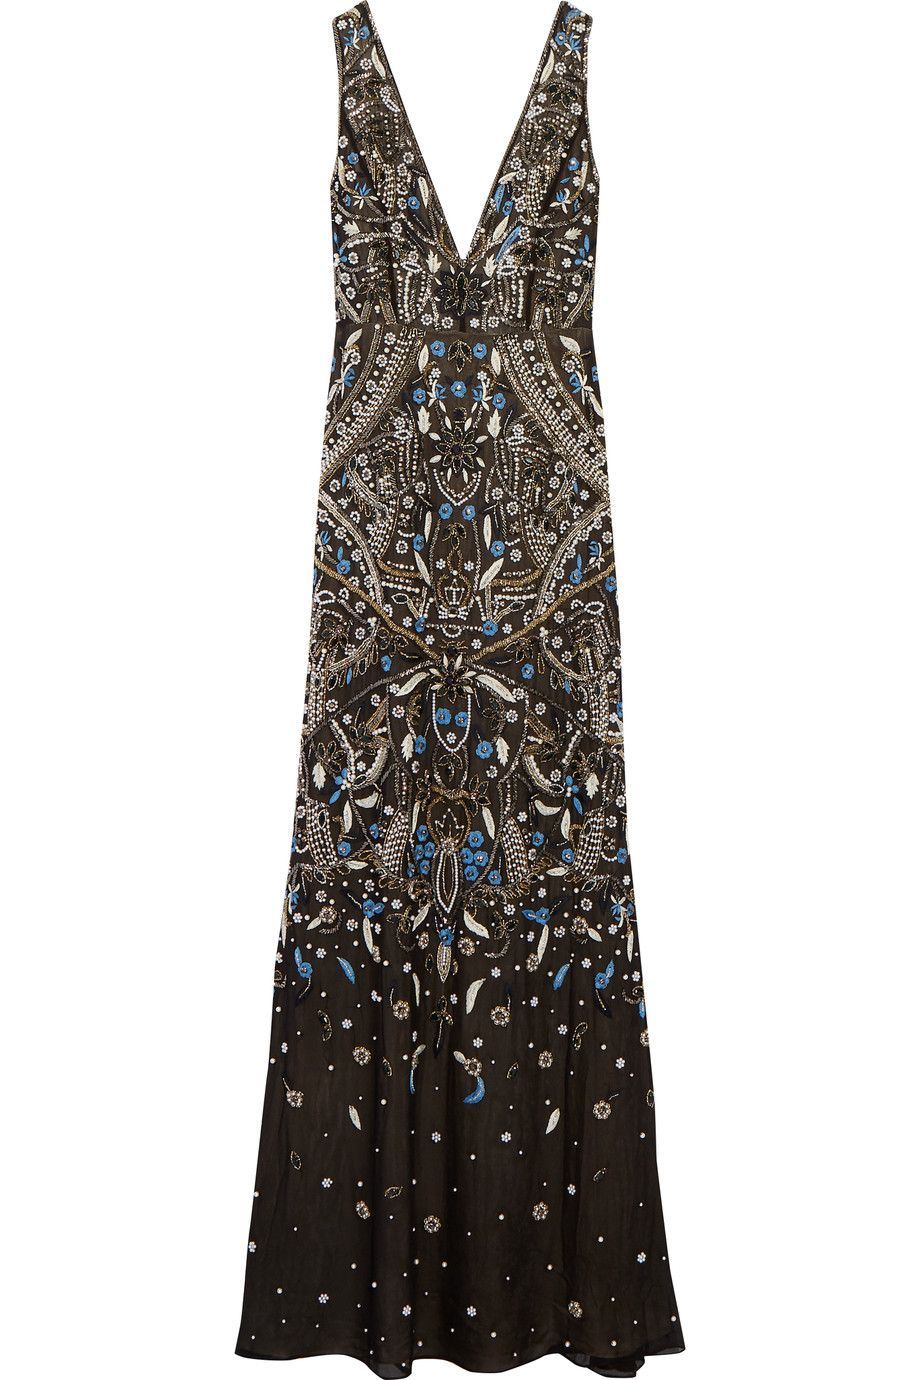 Alice and olivia marnee embellished silk georgette gown alice and olivia marnee embellished silk georgette gown aliceandolivia cloth gown ombrellifo Images